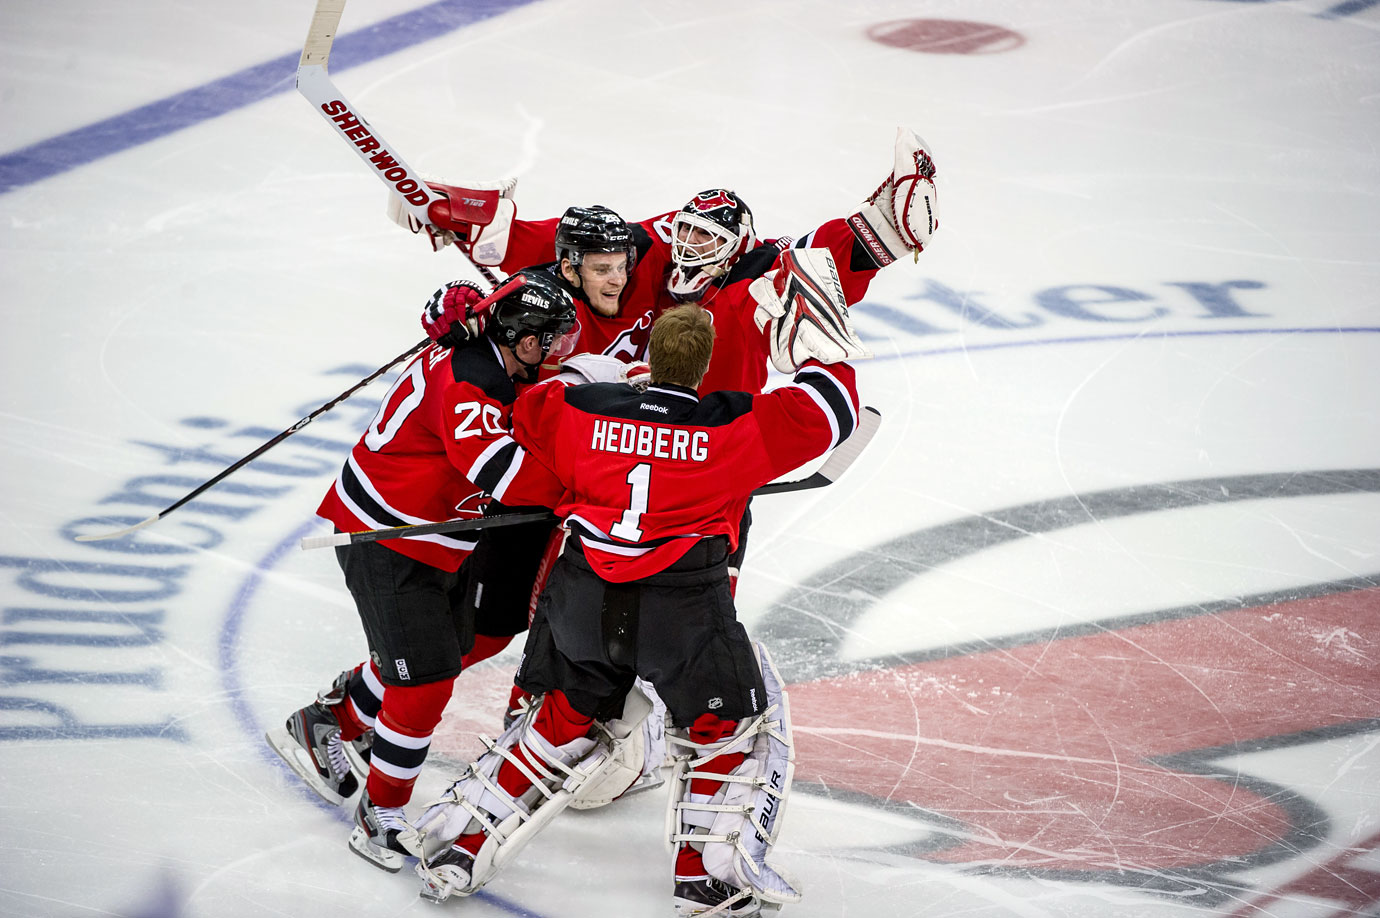 On May 25, 2012, the Devils beat the Rangers 3–2 thanks to Adam Henrique's goal in overtime, sending Brodeur to his fifth Stanley Cup finals appearance. New Jersey lost to the Los Angeles Kings in six games in what would turn out to be the 17th and final postseason of his career.